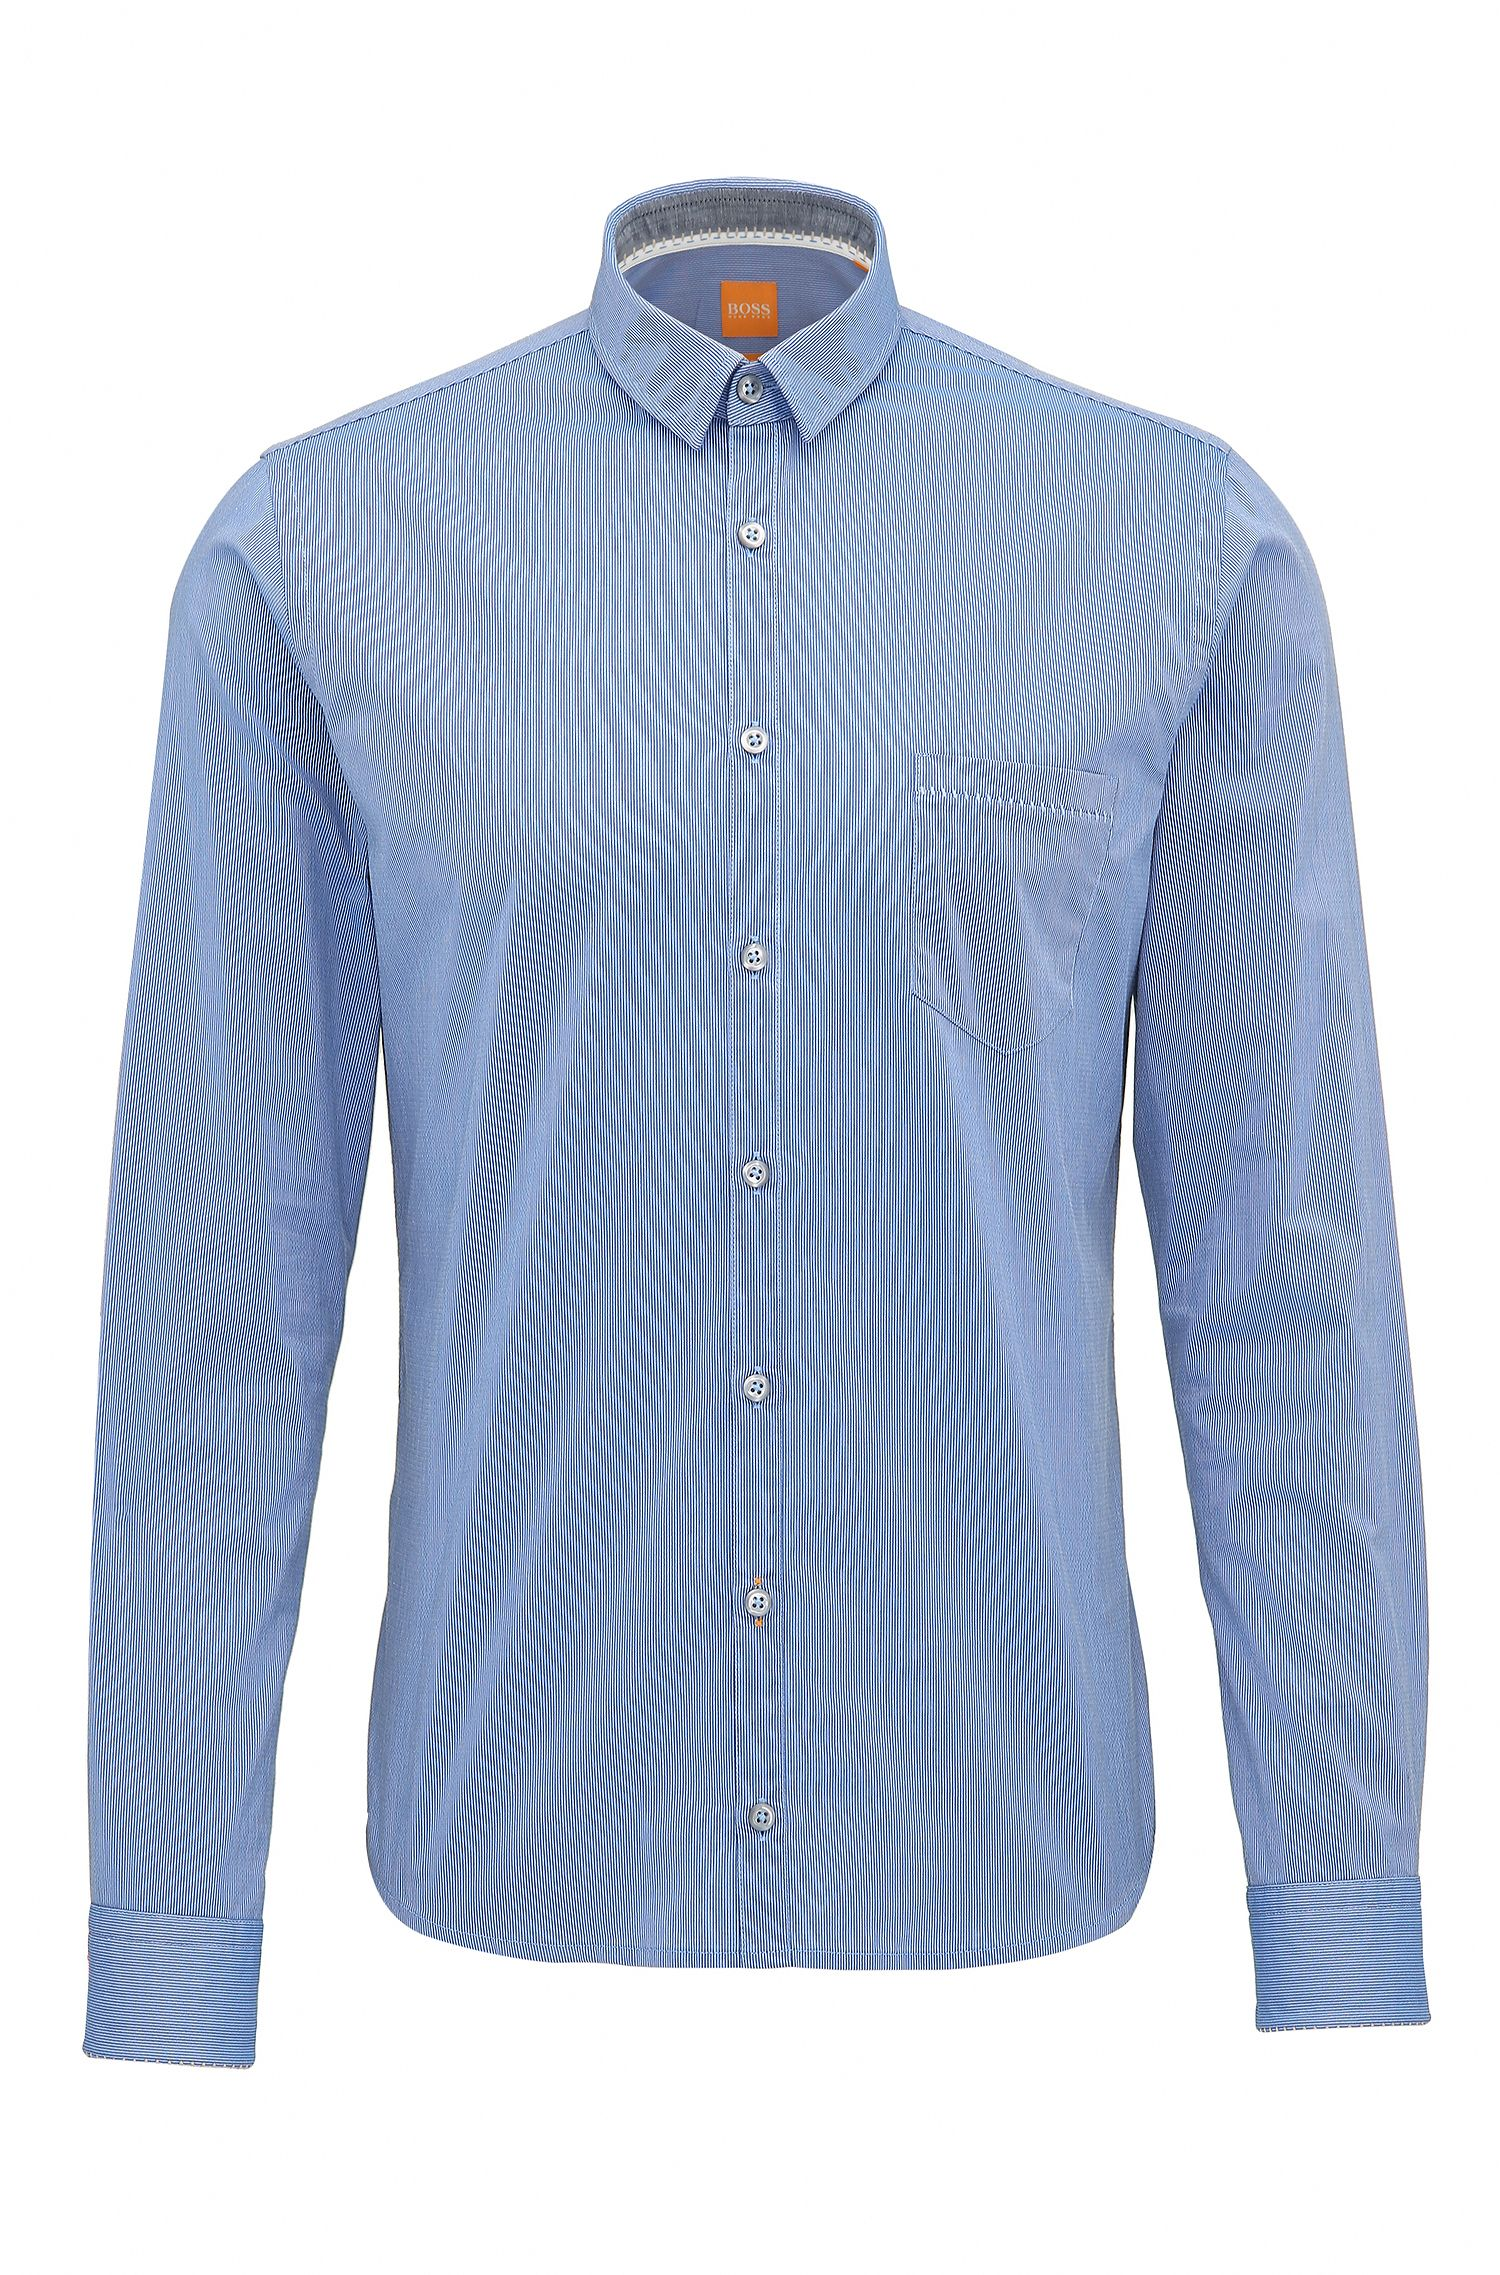 'Eglam' | Extra-Slim Fit, Dobby Cotton Button Down Shirt